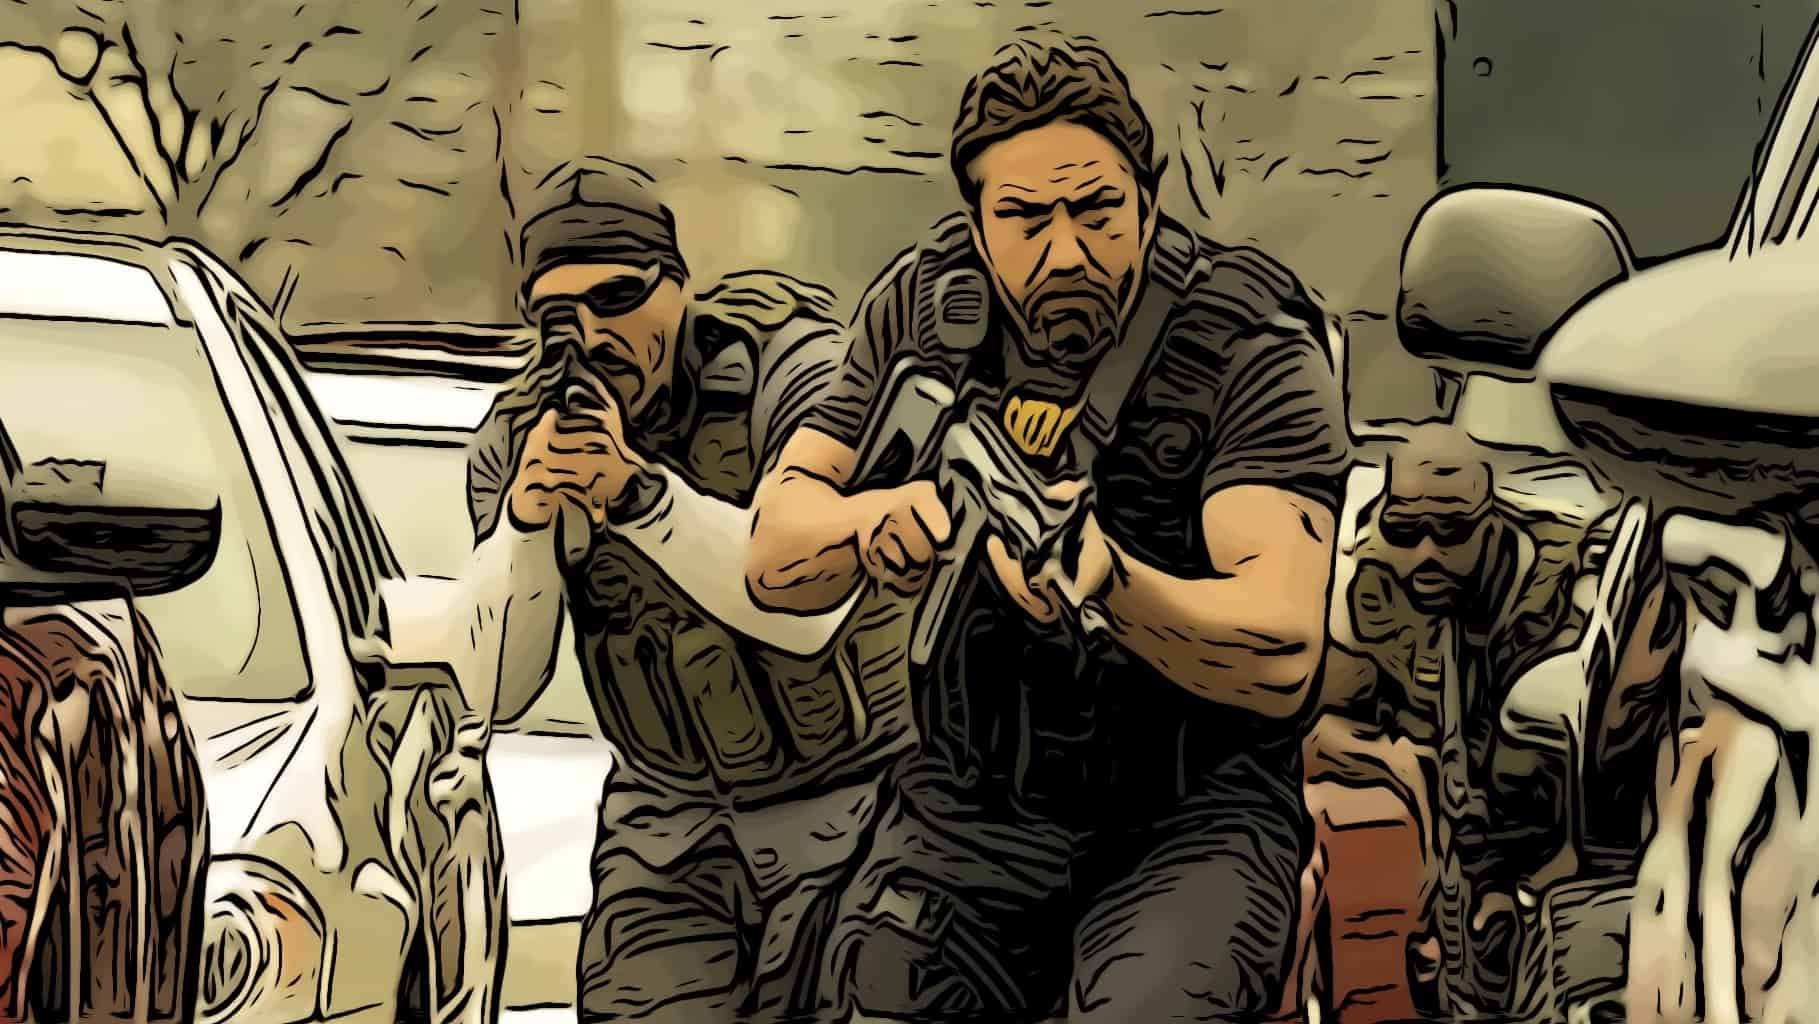 Scene in Den of Thieves for best bank robbery movies post.